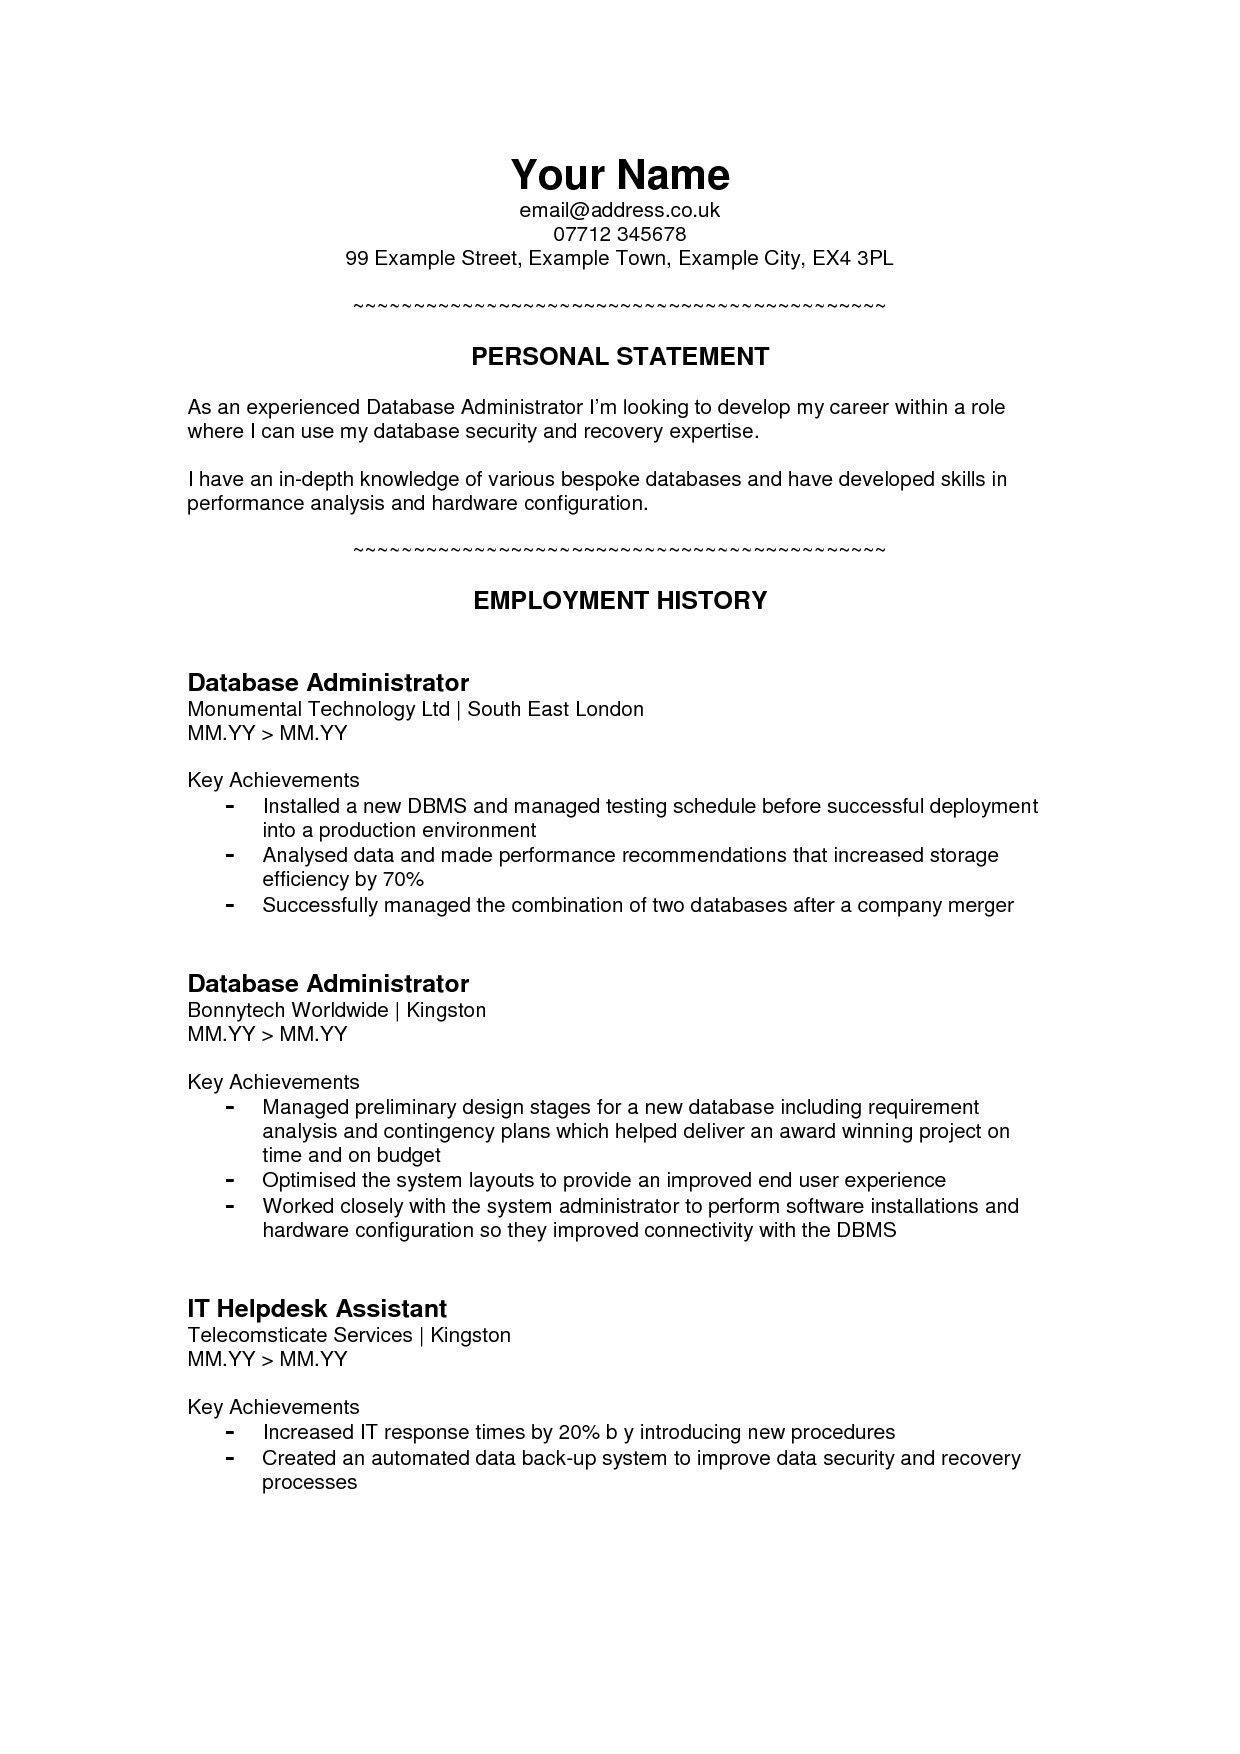 System Admin Resume Example Lovely Inspirational Grapher Sample Be Personal Statement Brand Profile Examples Administrator